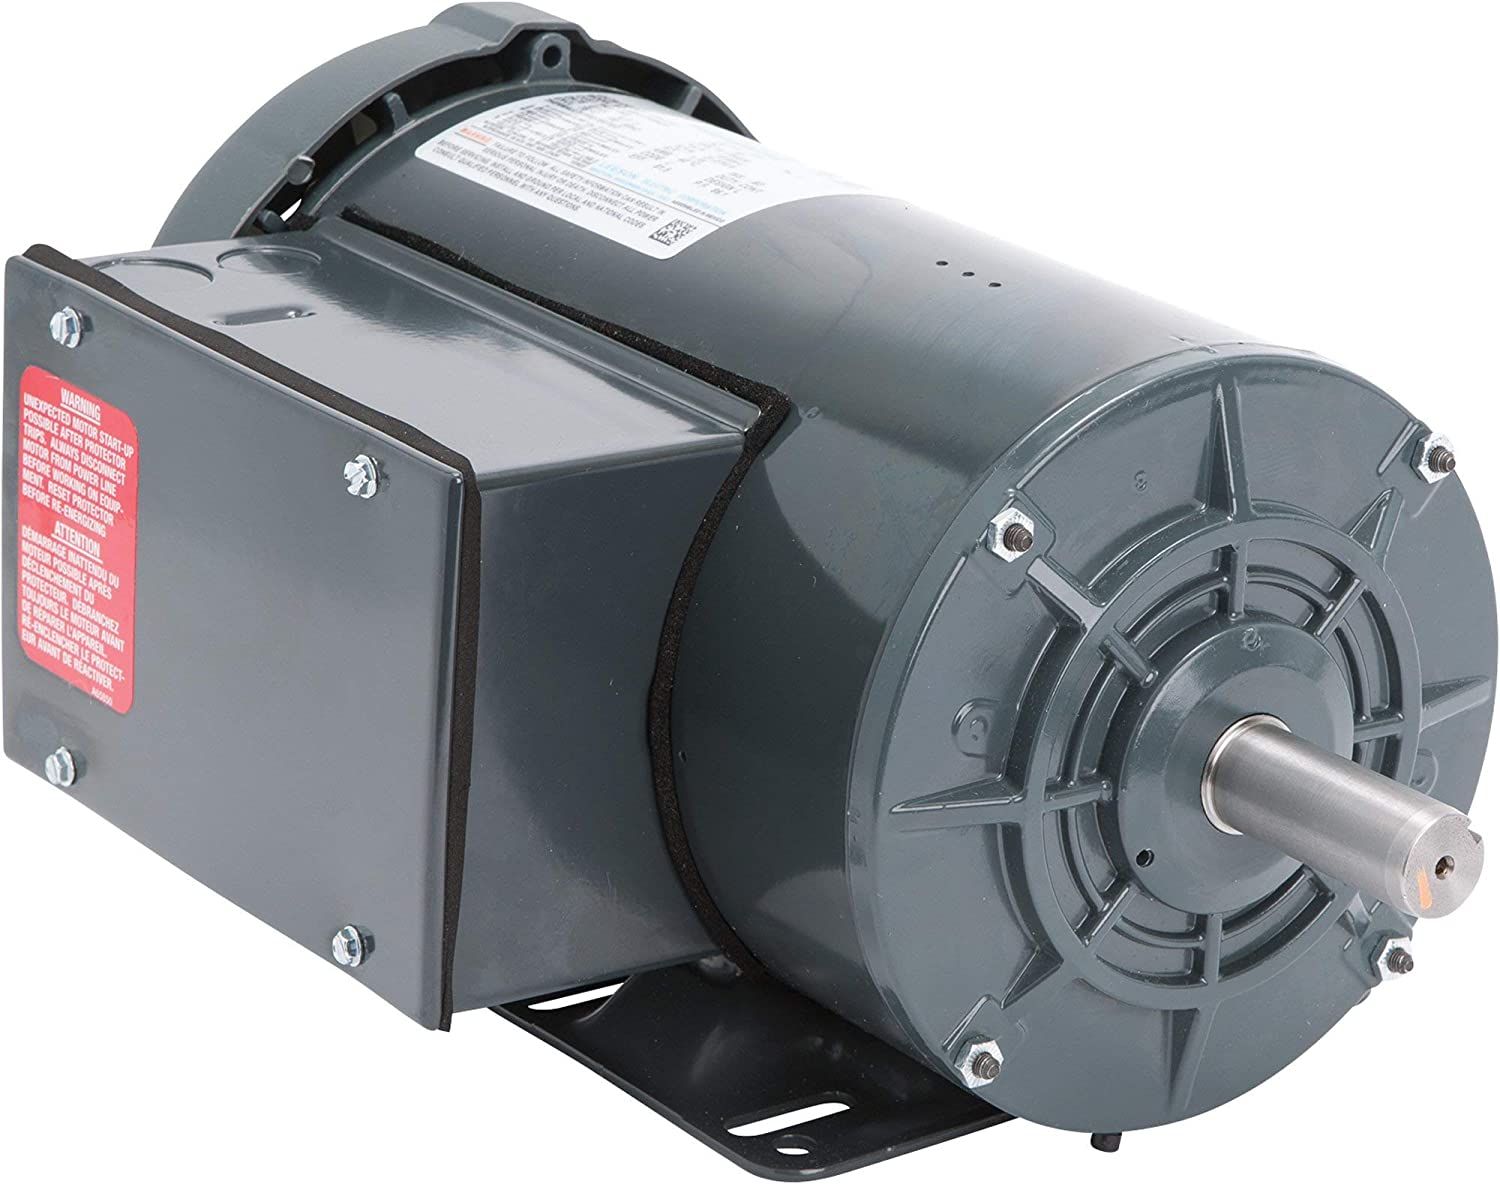 1,725 RPM Model Number M6K17FB4 Leeson Farm Duty Electric Motor 230 Volts Single Phase 2 HP